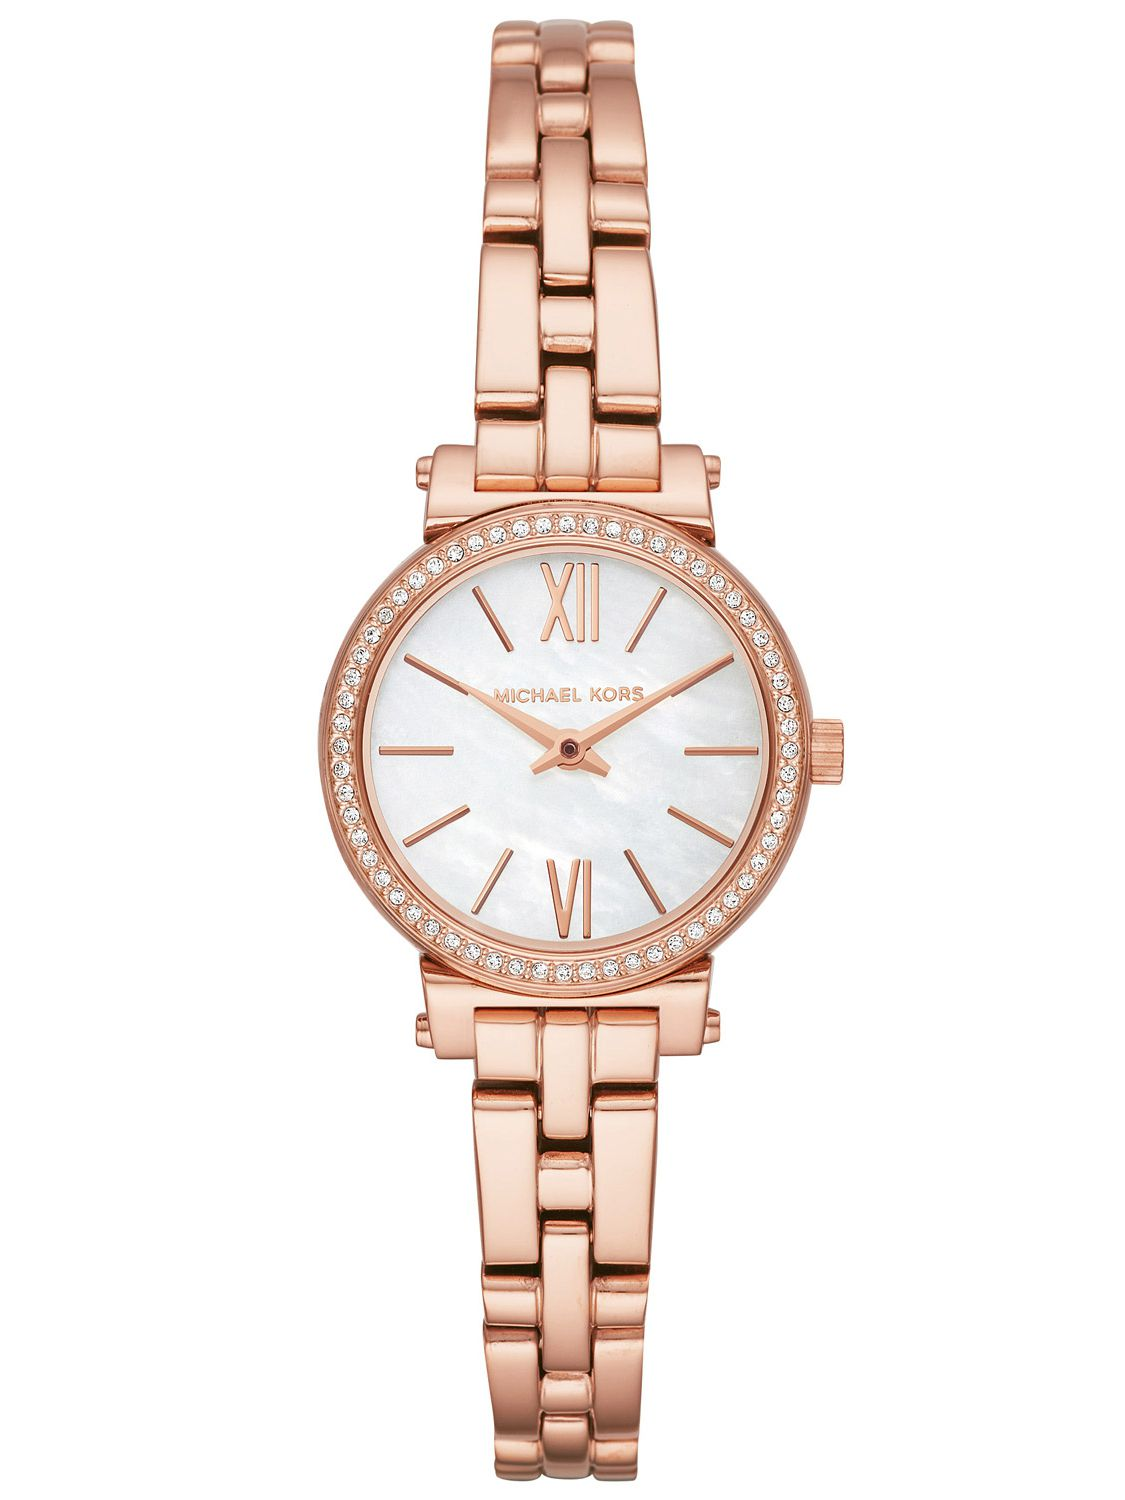 b1a3cfd5822f MICHAEL KORS Ladies Wrist Watch Sofie MK3834 • uhrcenter